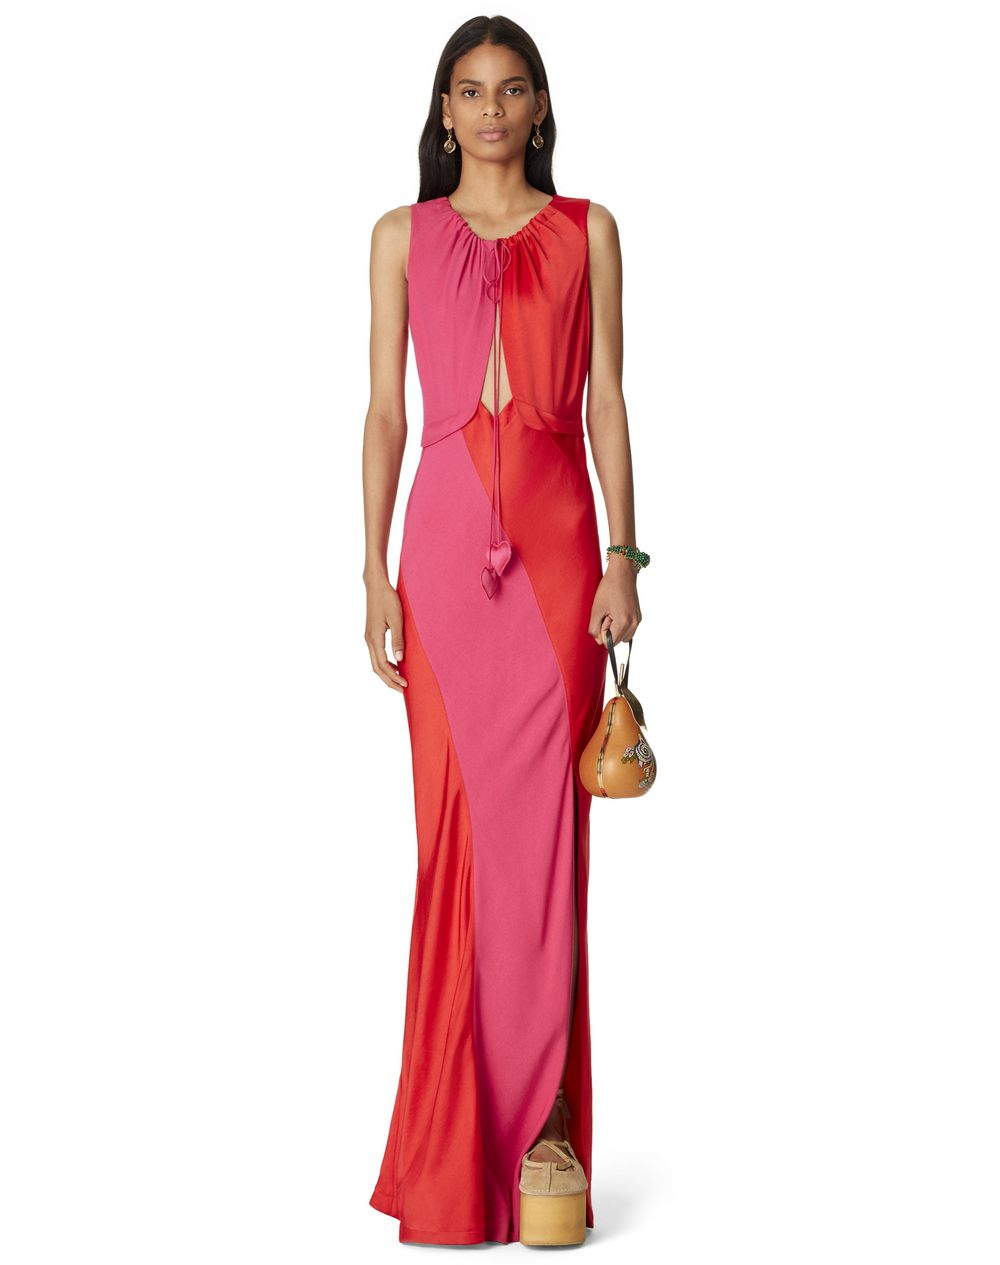 LONG TWO-TONED SLIT HEART DRESS - Lanvin